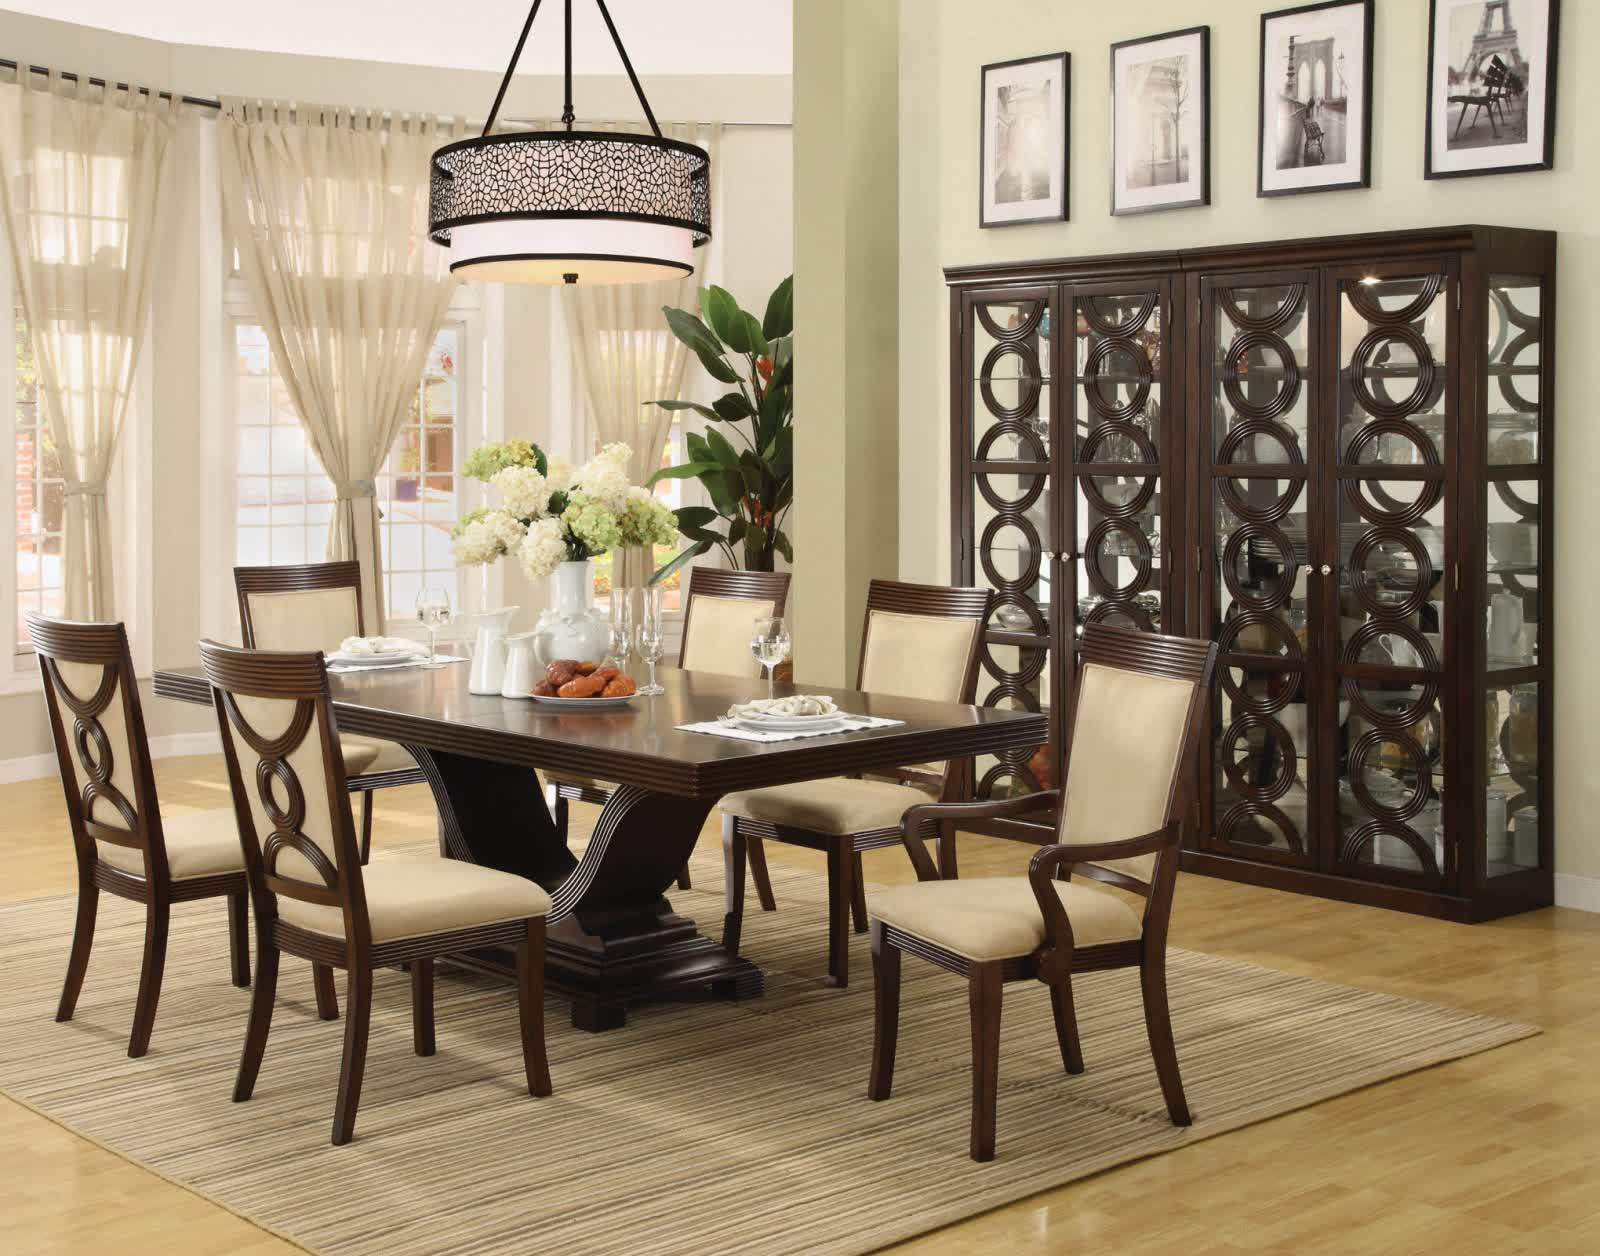 Attractive centerpieces for dining room tables to create - How to decorate a dining room ...